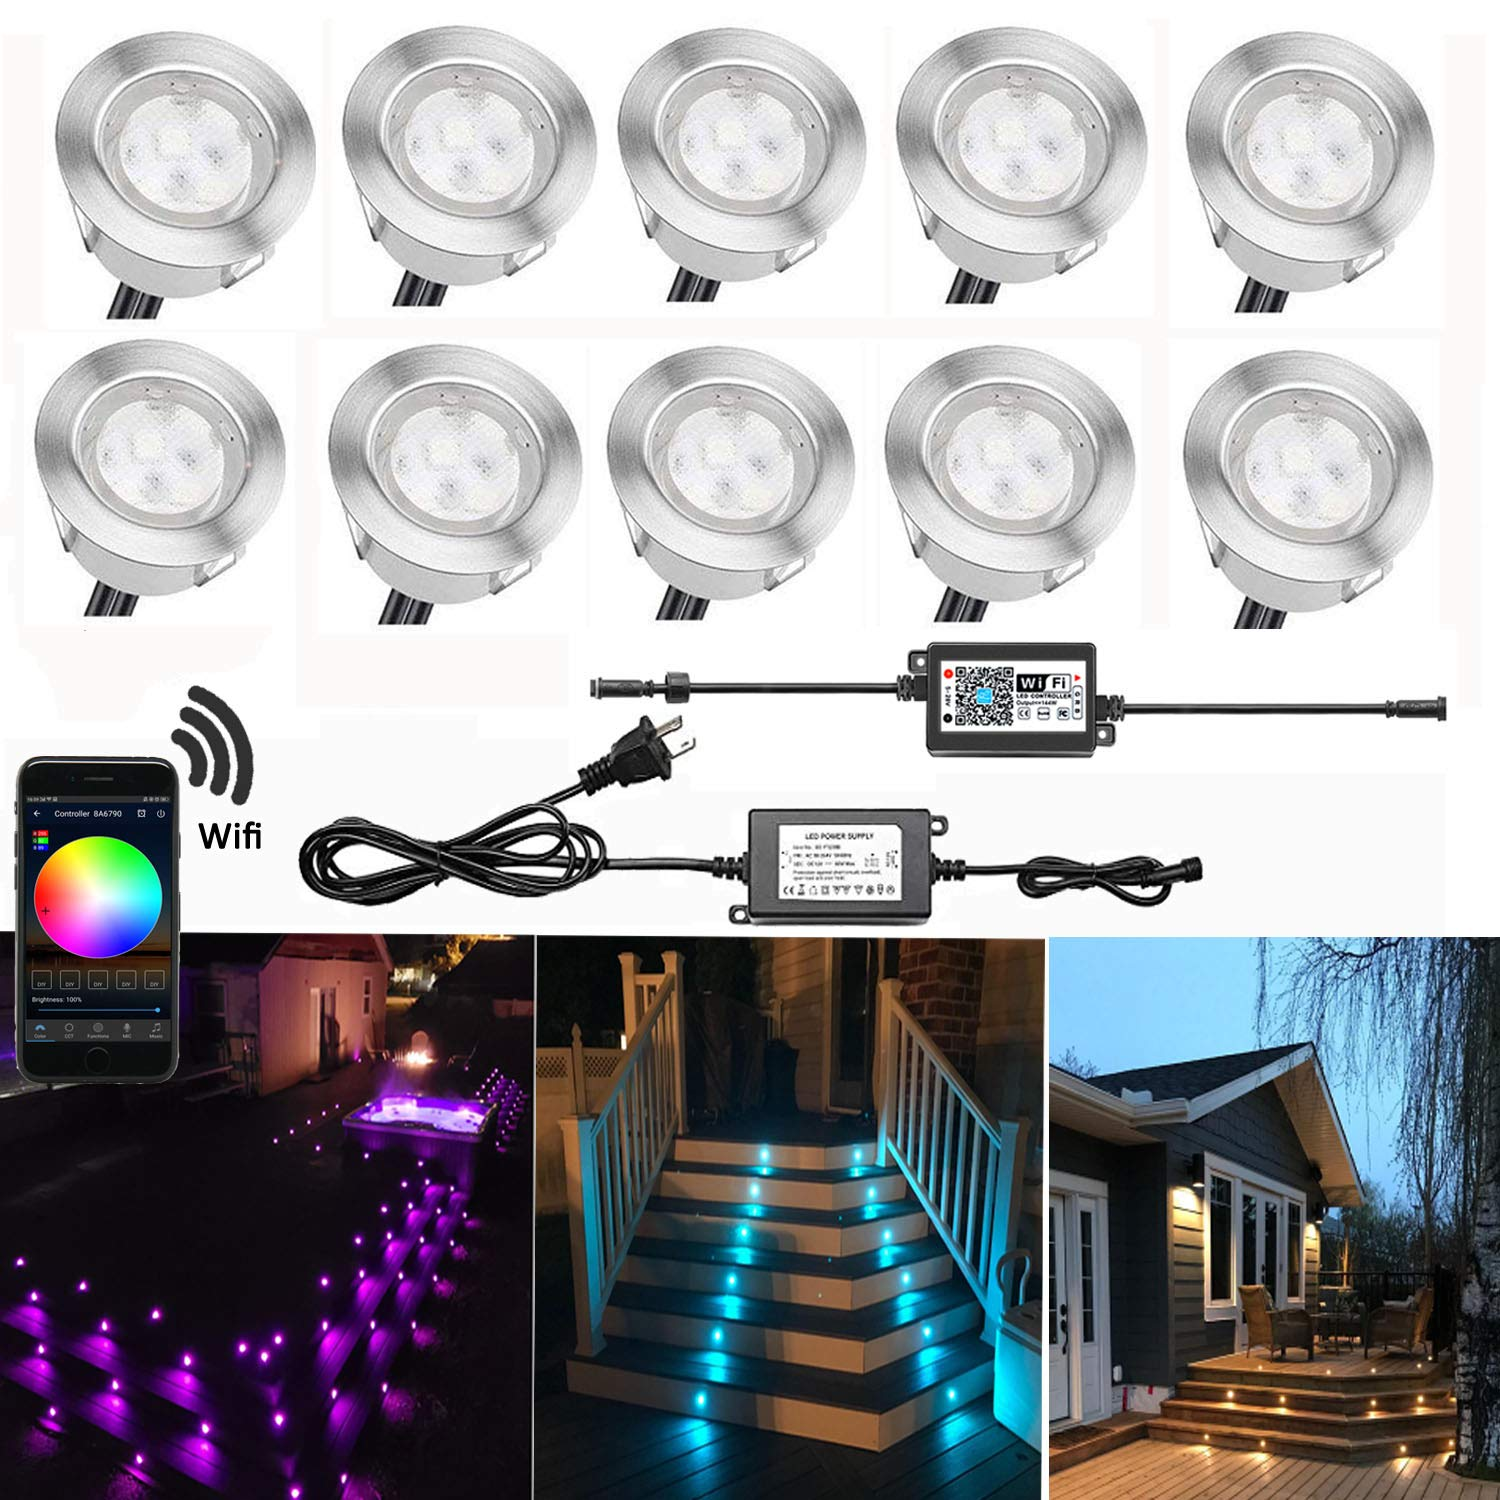 QACA Smart LED Deck Lights Kit WiFi Controlled Color Changeable, Φ1.38'' Outdoor IP67 Waterproof Low Voltage Step Lights In-Ground Lighting Kit, Works with Samrt Phone, Alexa and Google Home,10 Pack